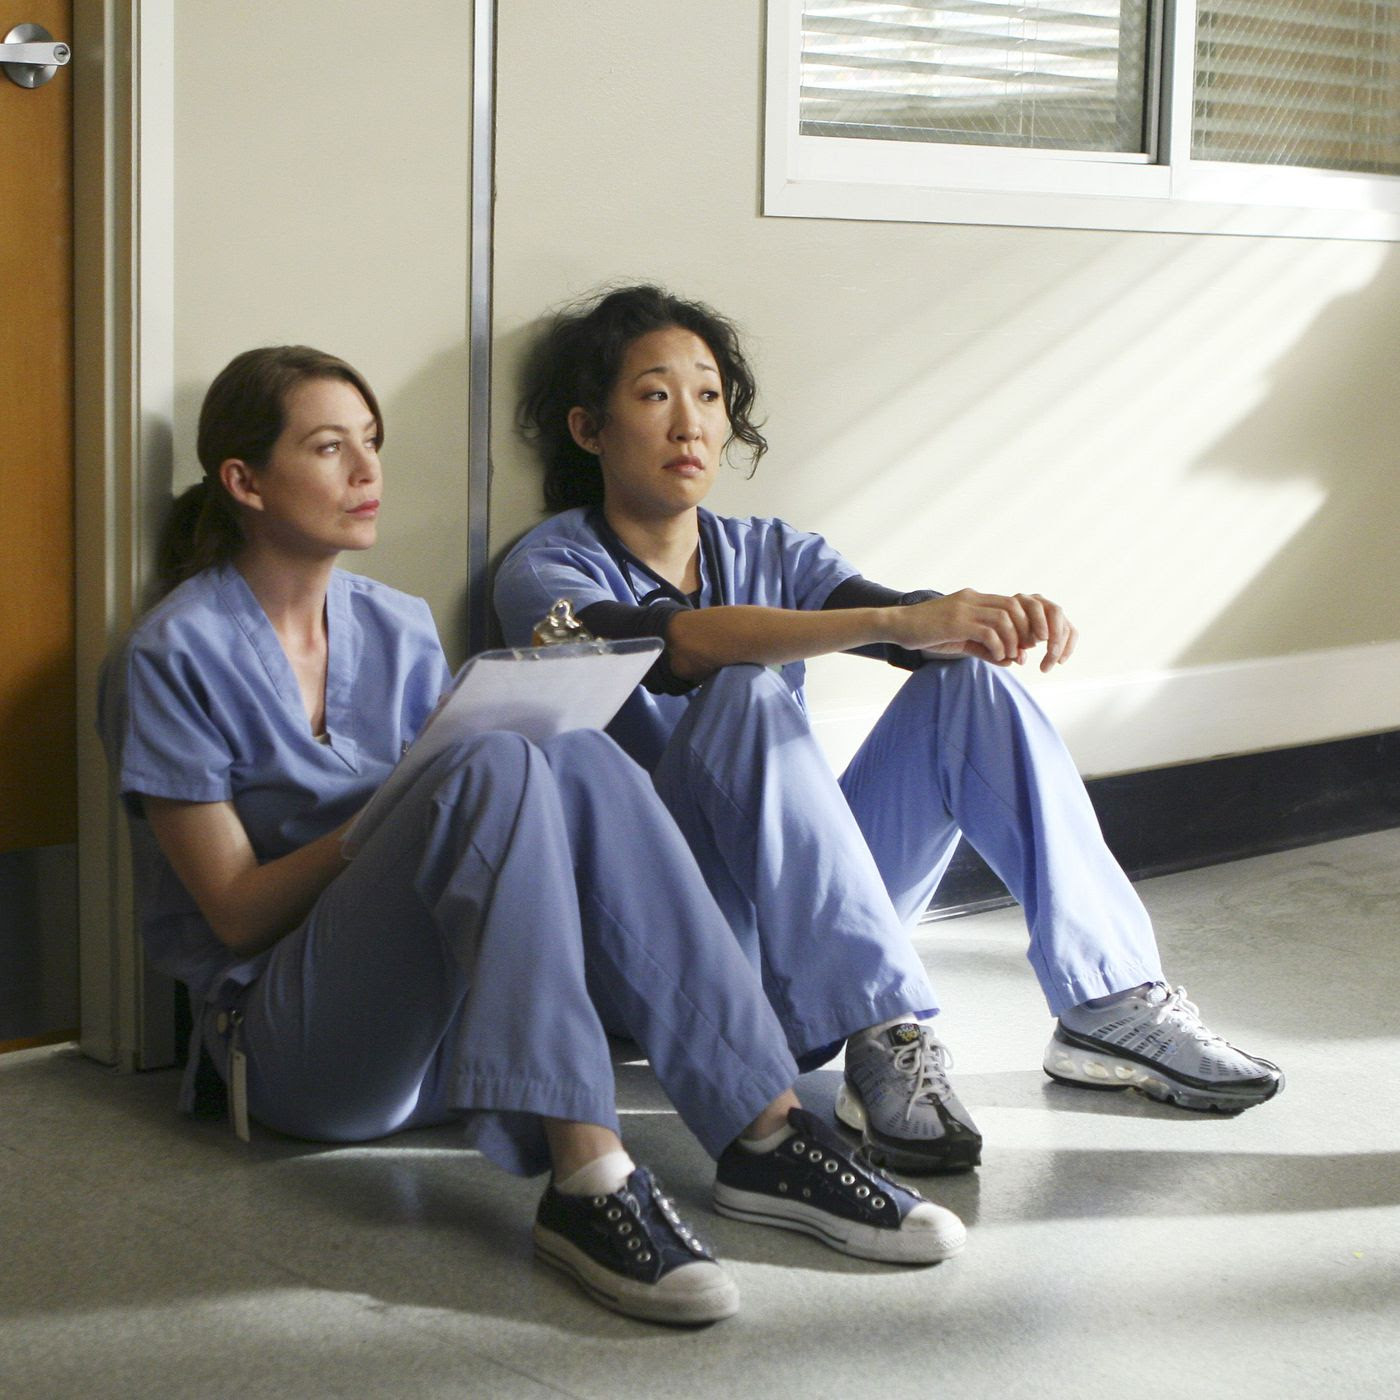 The lies of the TV abortion storyline